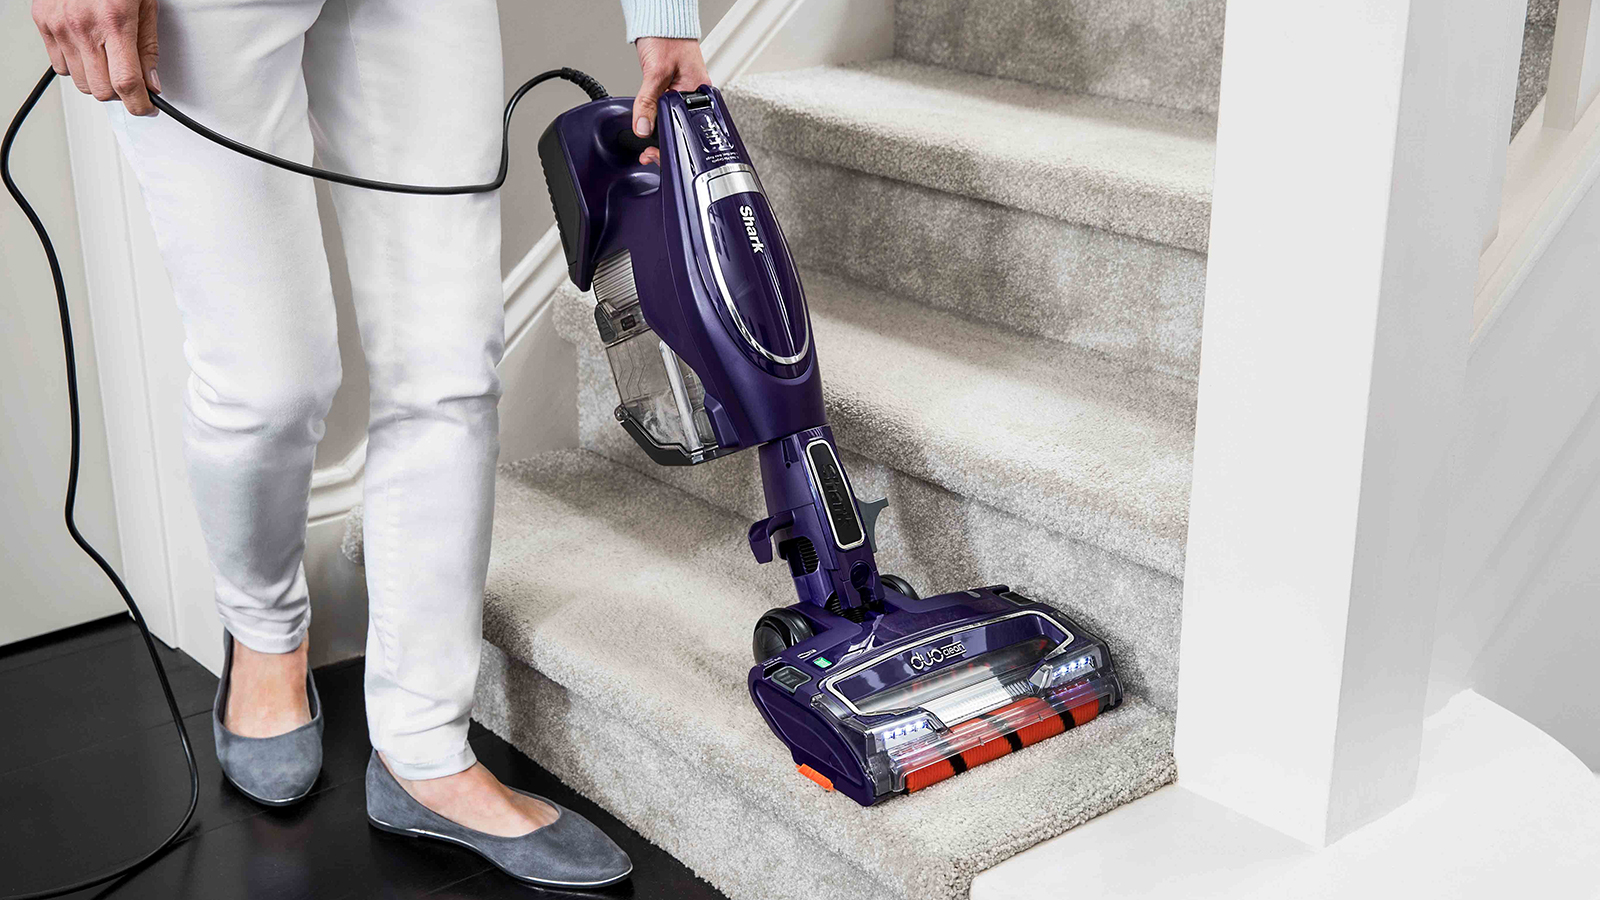 Stair Cleaning with Shark DuoClean Corded Stick Vacuum Cleaner